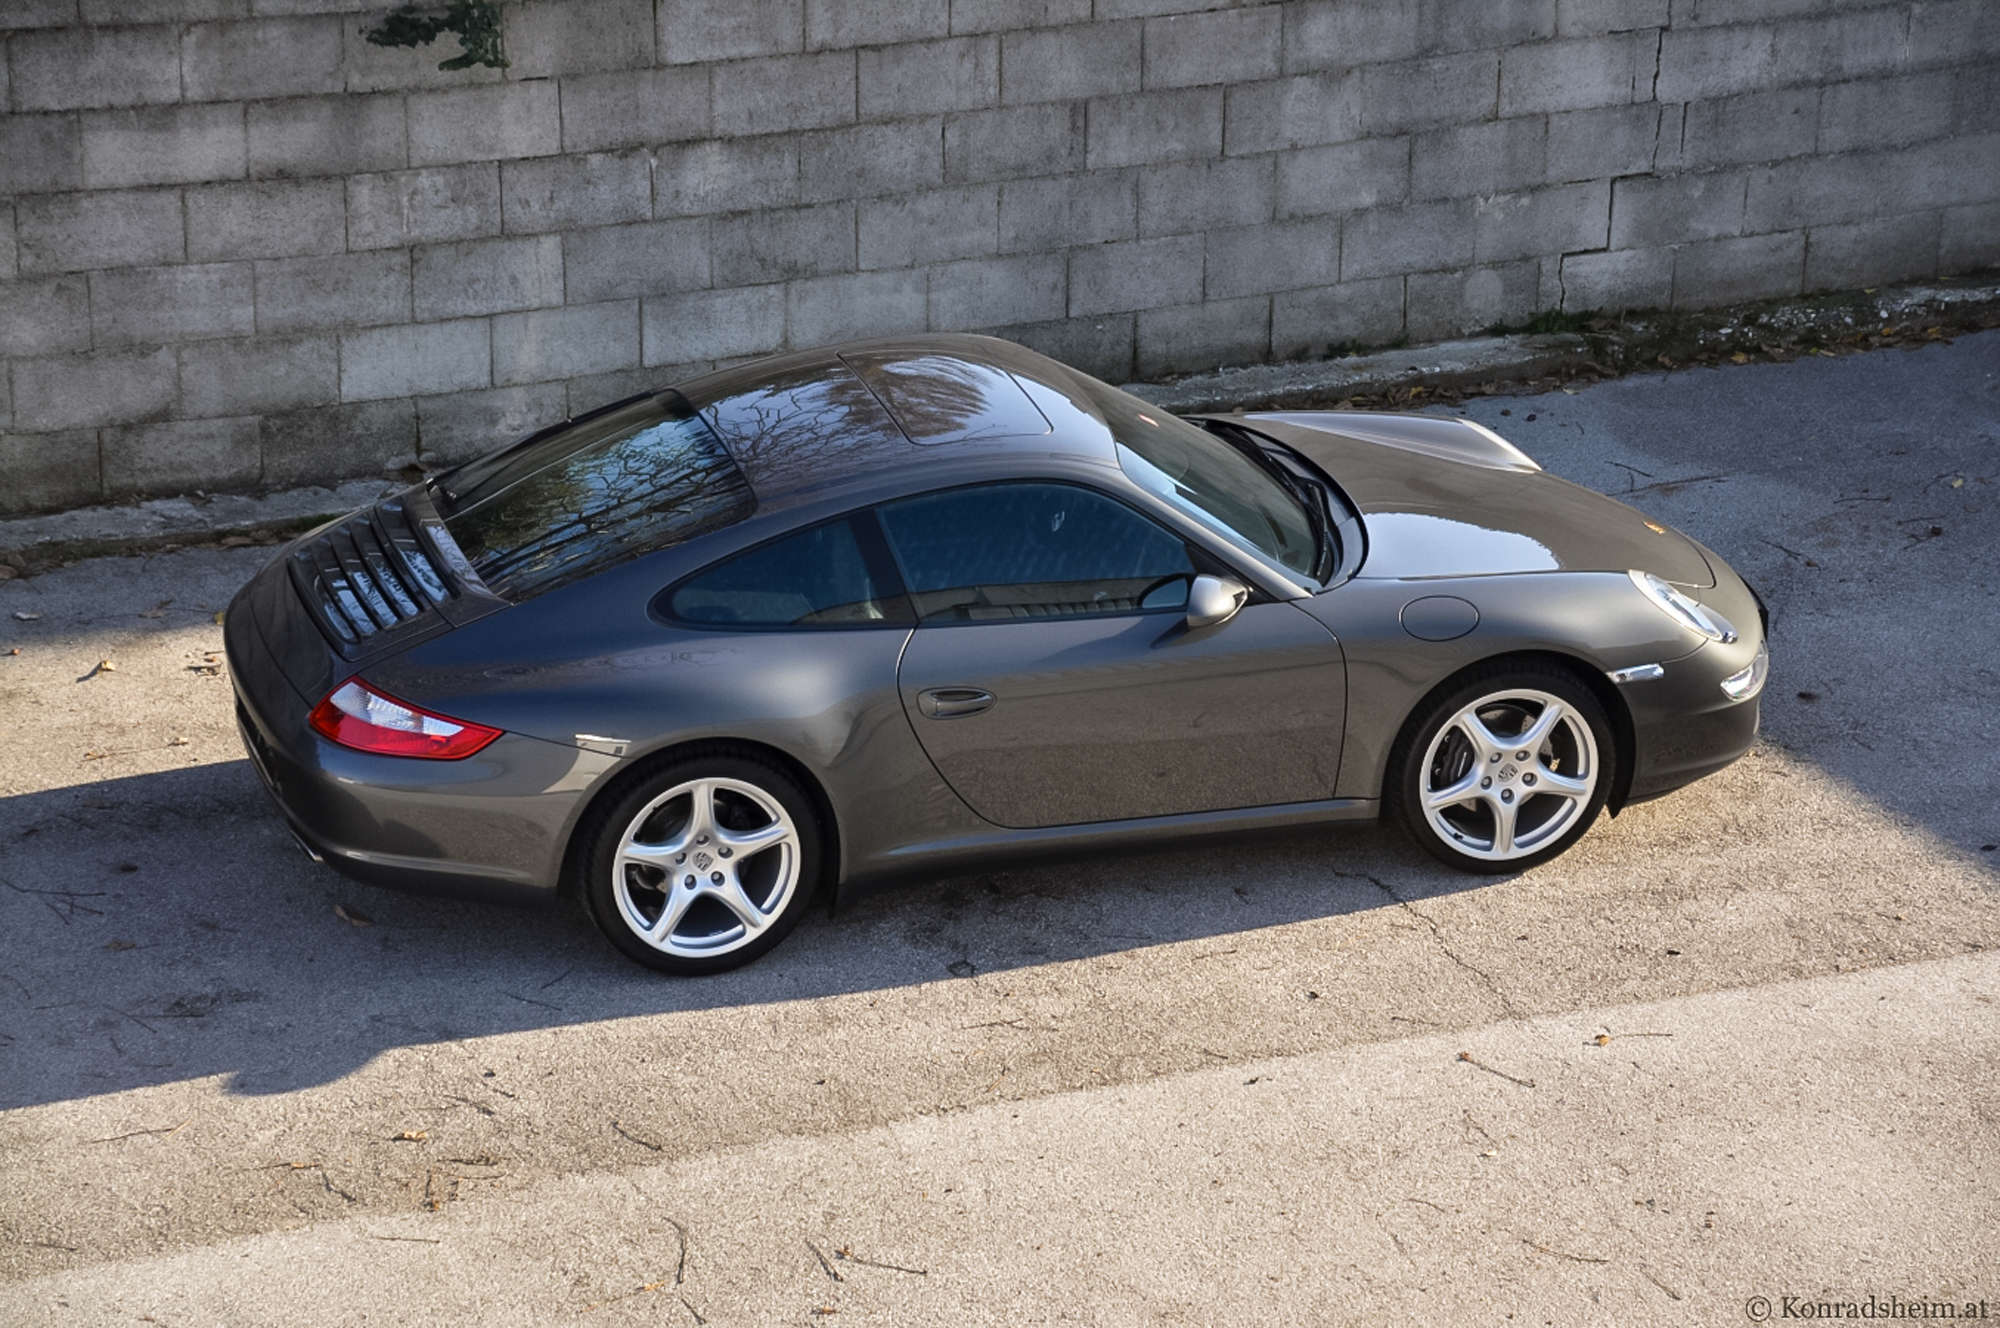 Buyer's Guide Porsche 997.1: 5 questions before buying one